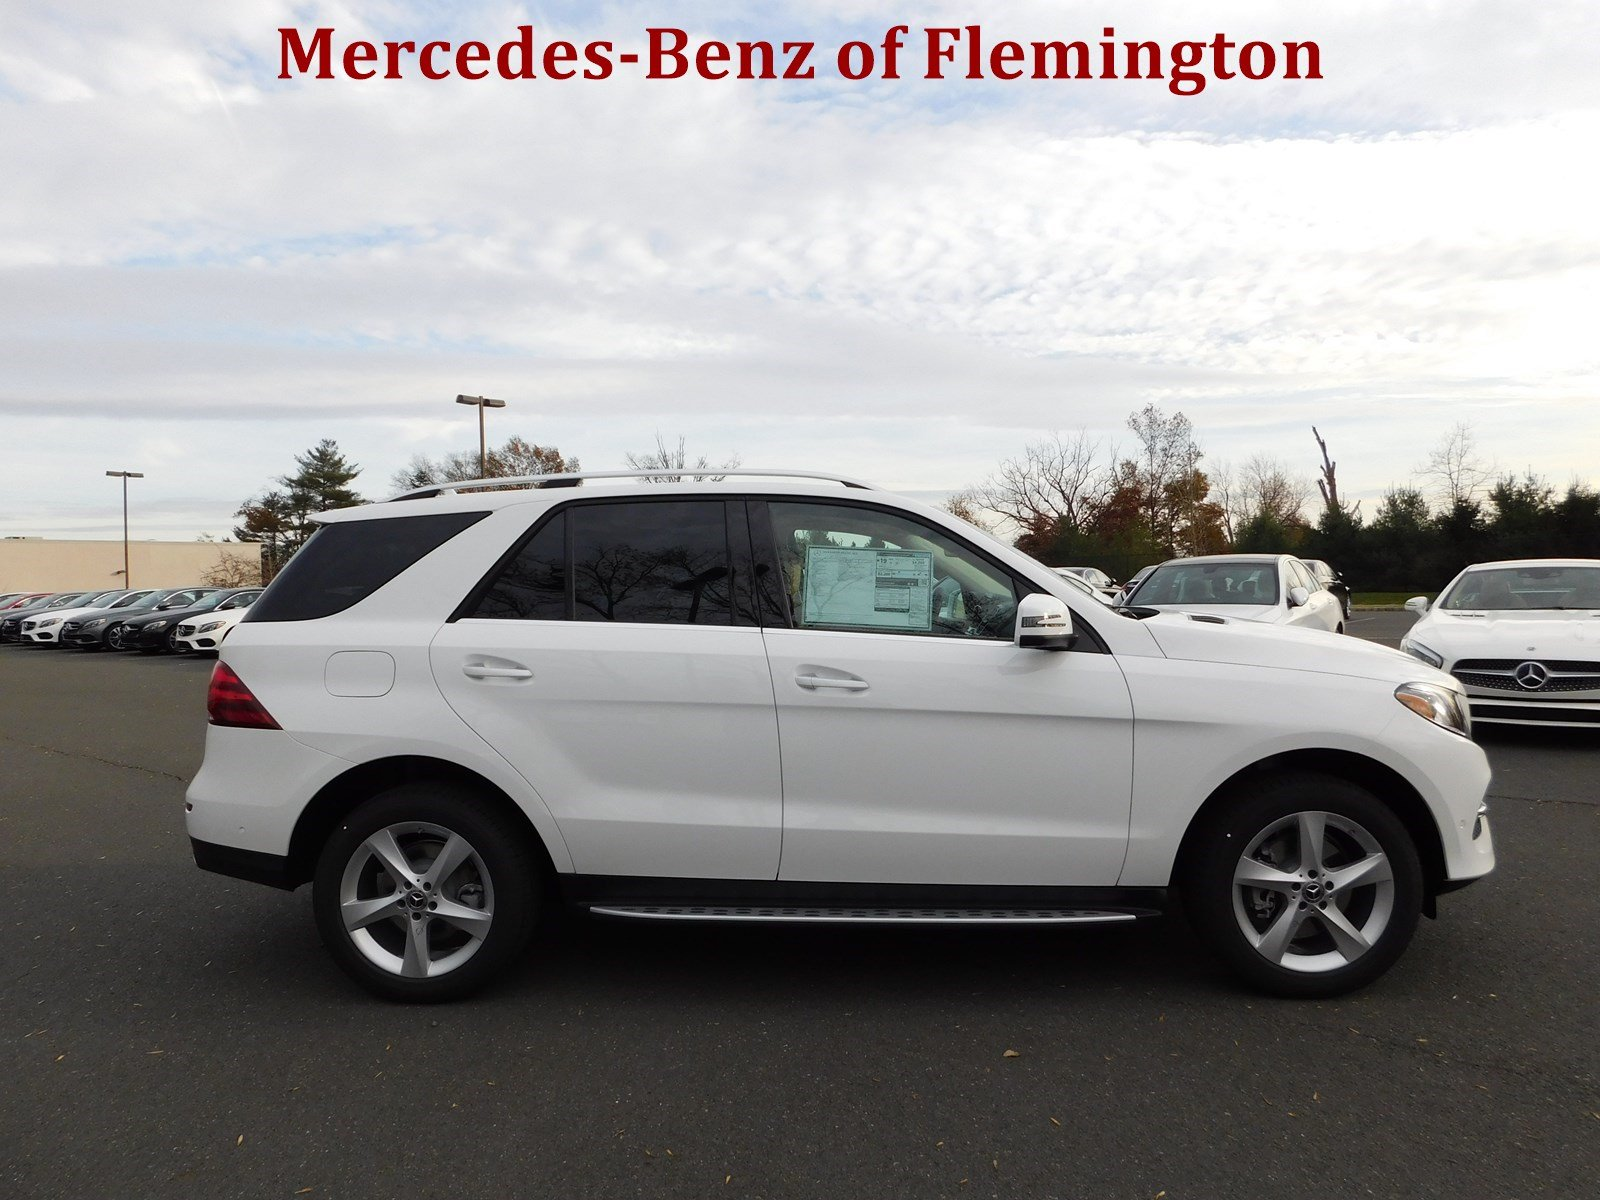 New 2018 mercedes benz gle gle 350 suv in flemington for Schedule c service mercedes benz